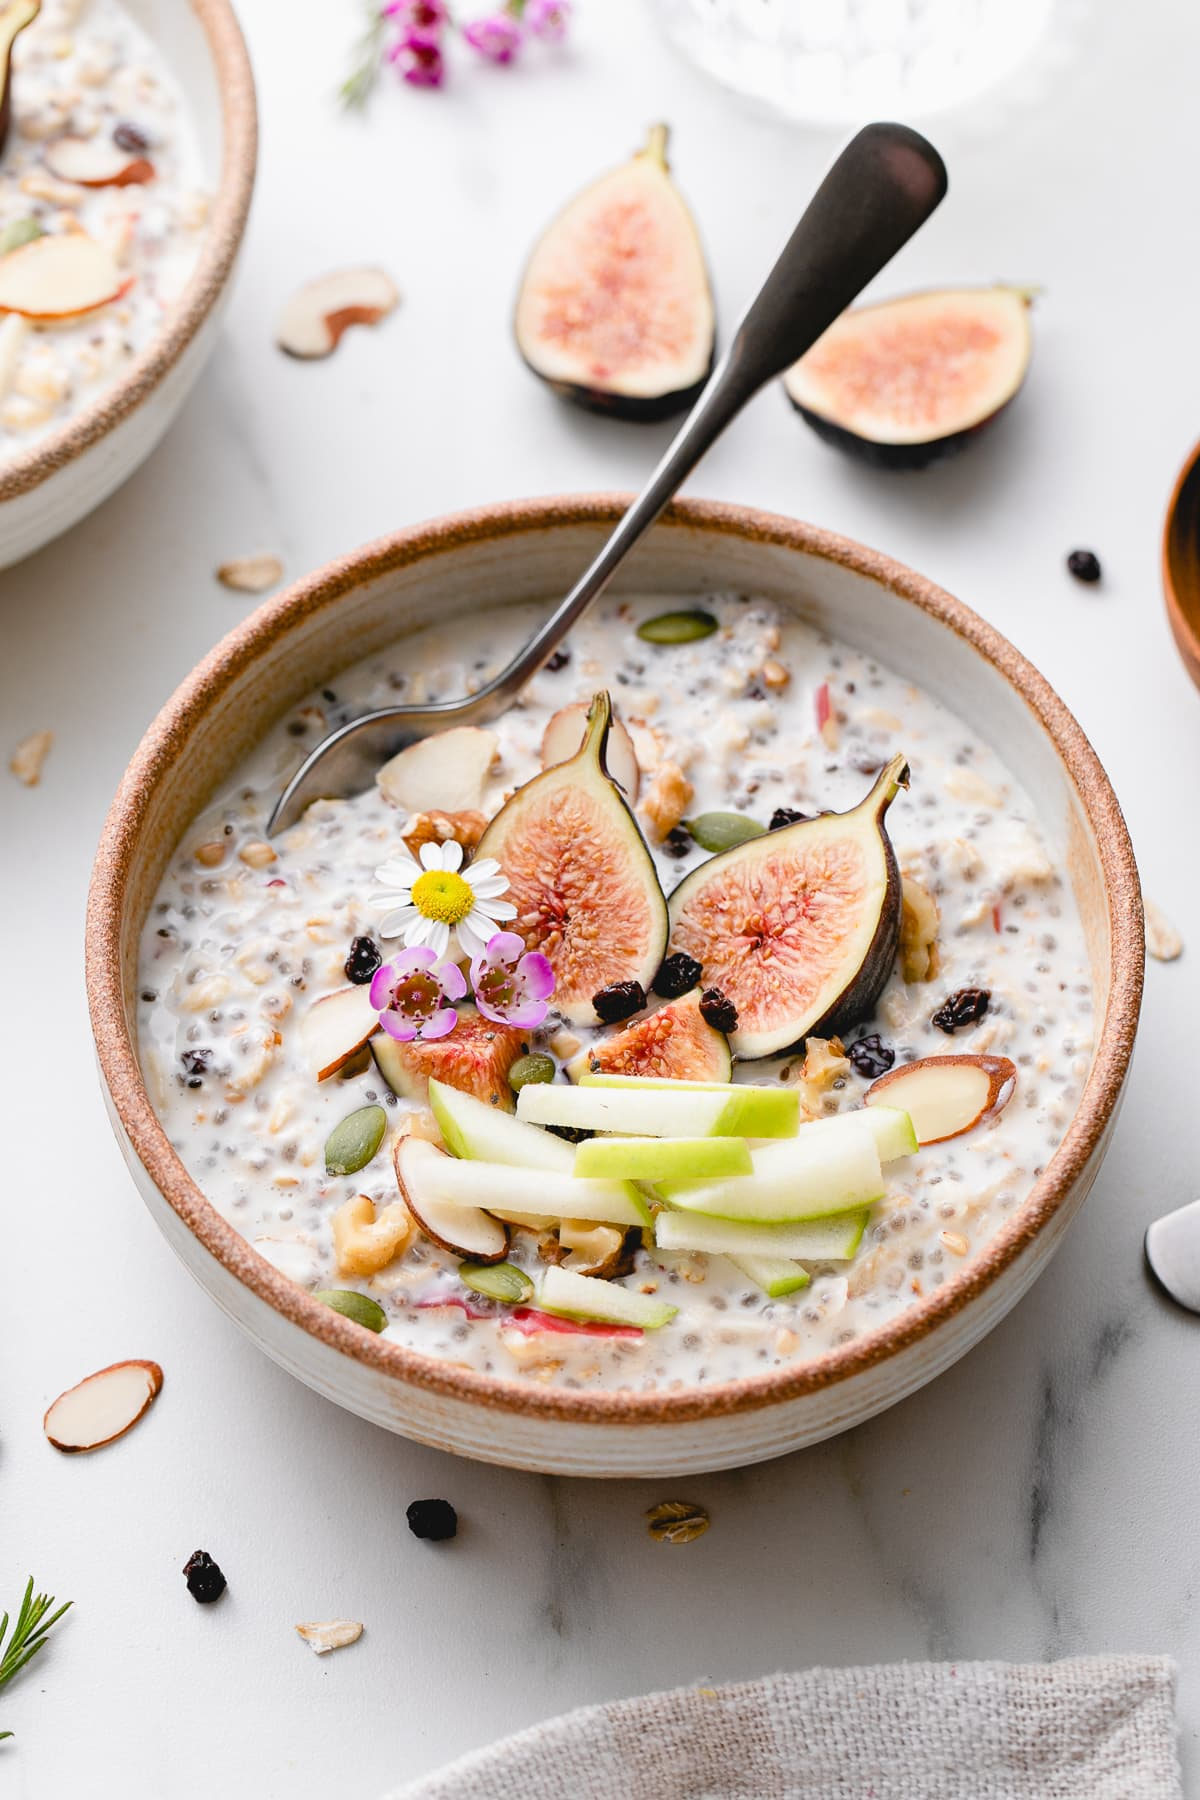 side angle view of bowl of bircher muesli with fruits and nuts with items surrounding.